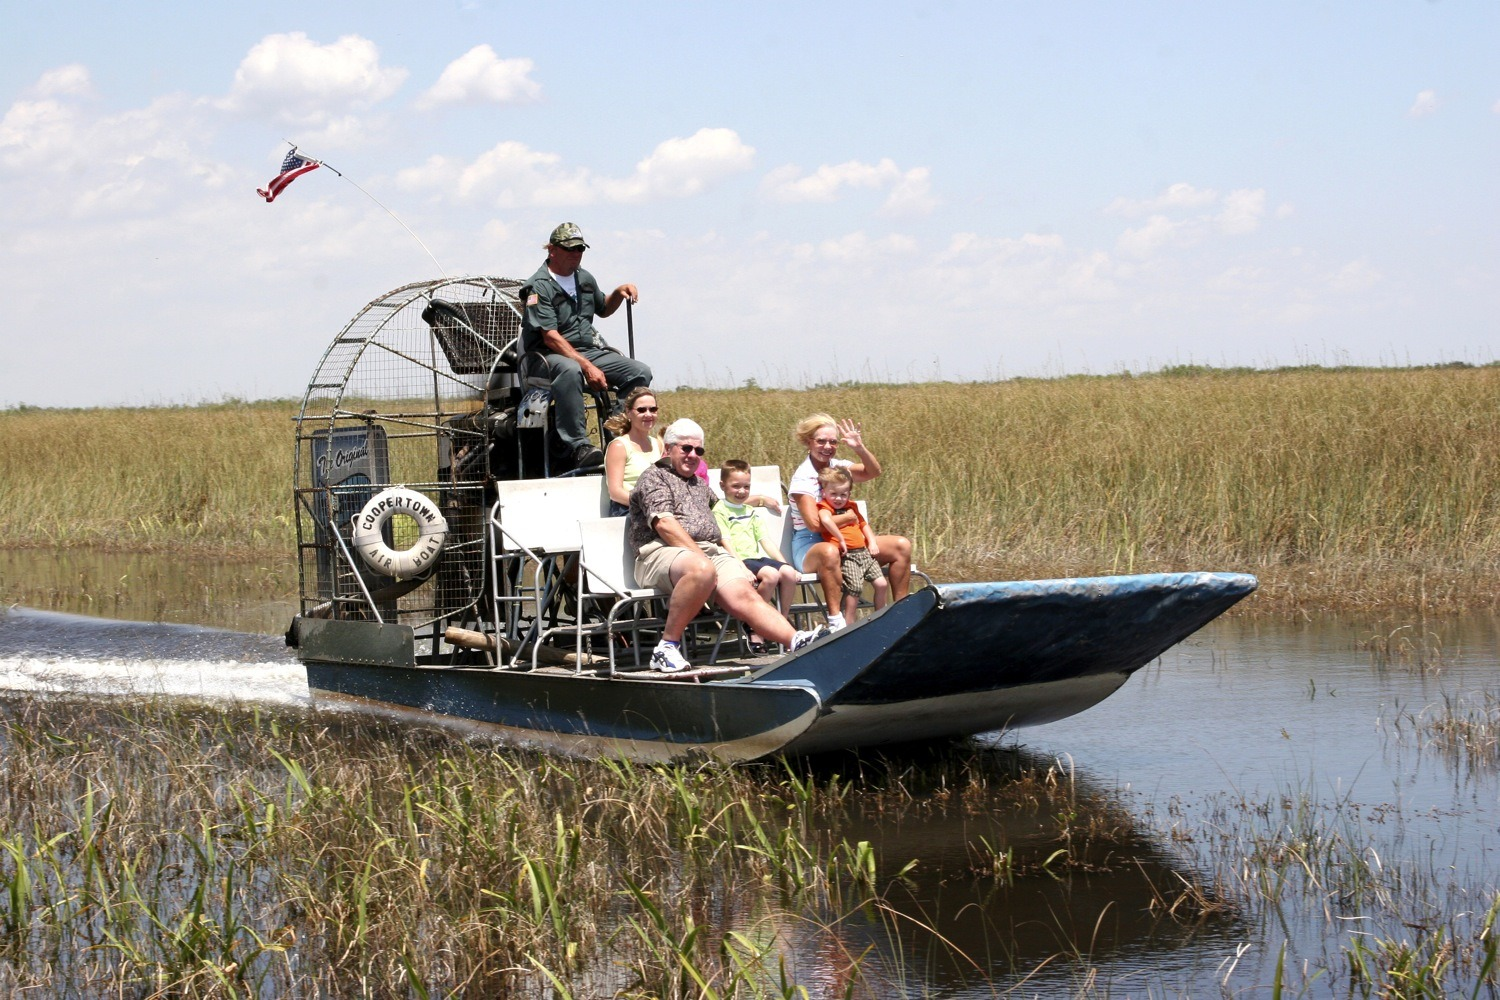 Coopertown Airboat Rides/Restaurant